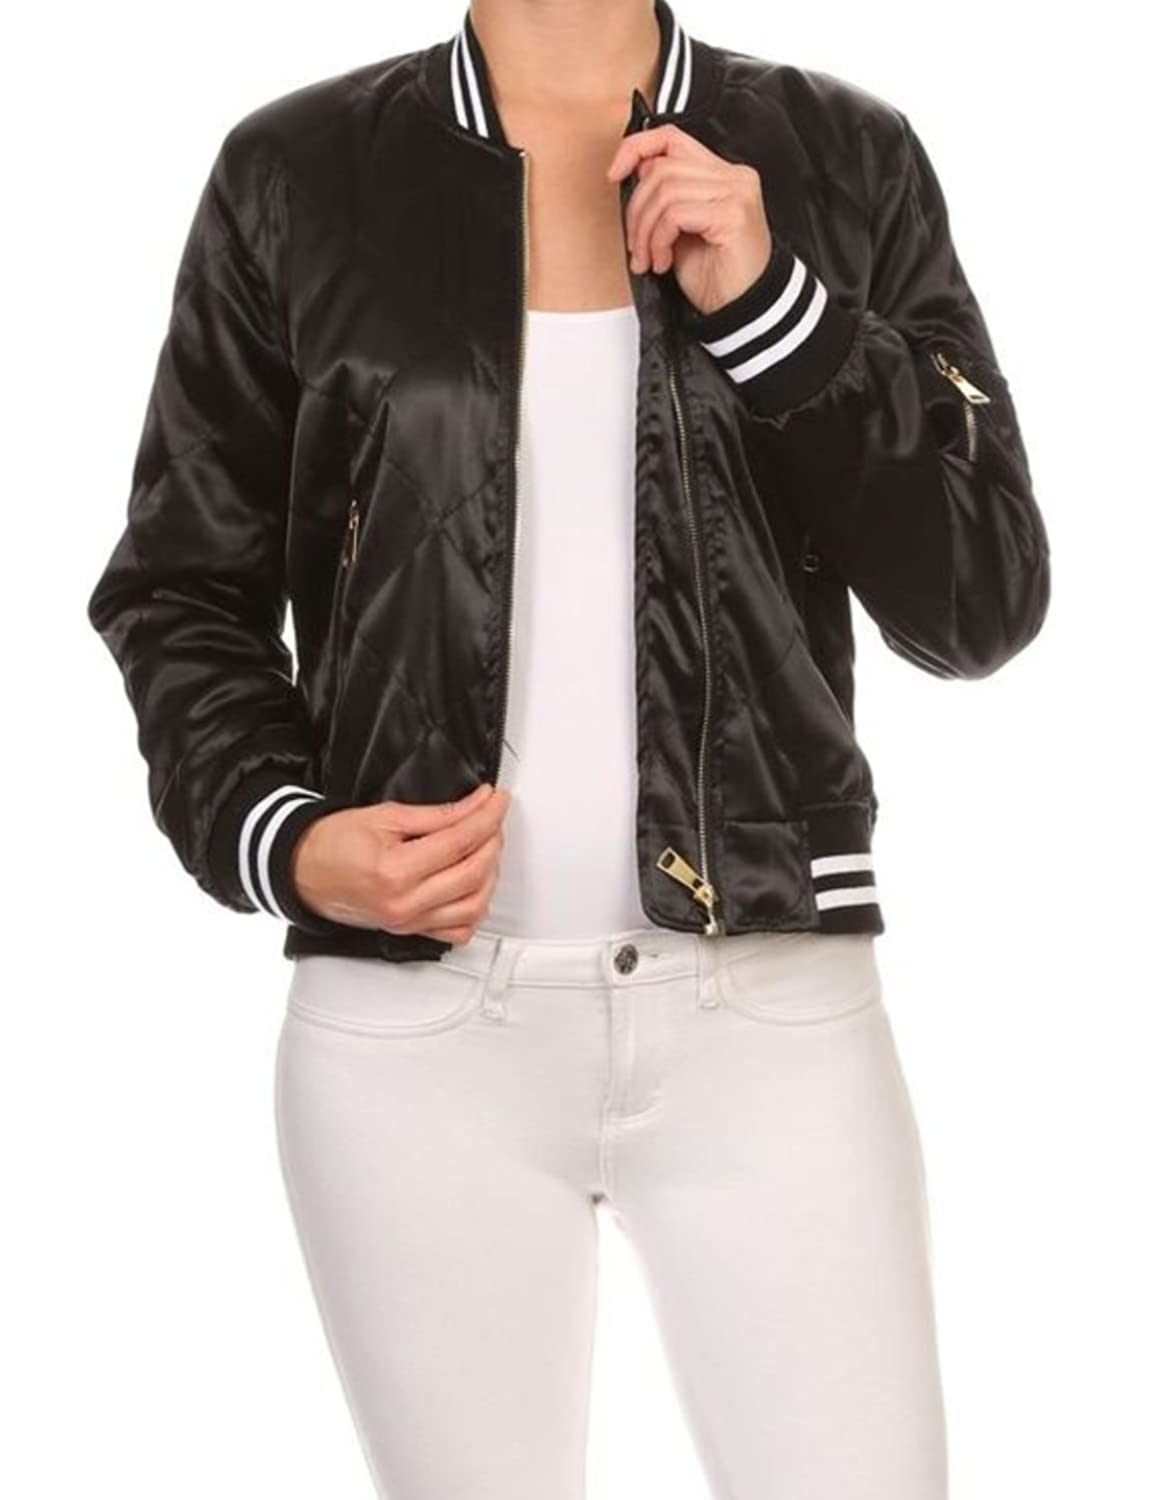 makeitmint Women's Silky Baseball Style Quilted Zip Up Bomber Jacket w/ Pockets